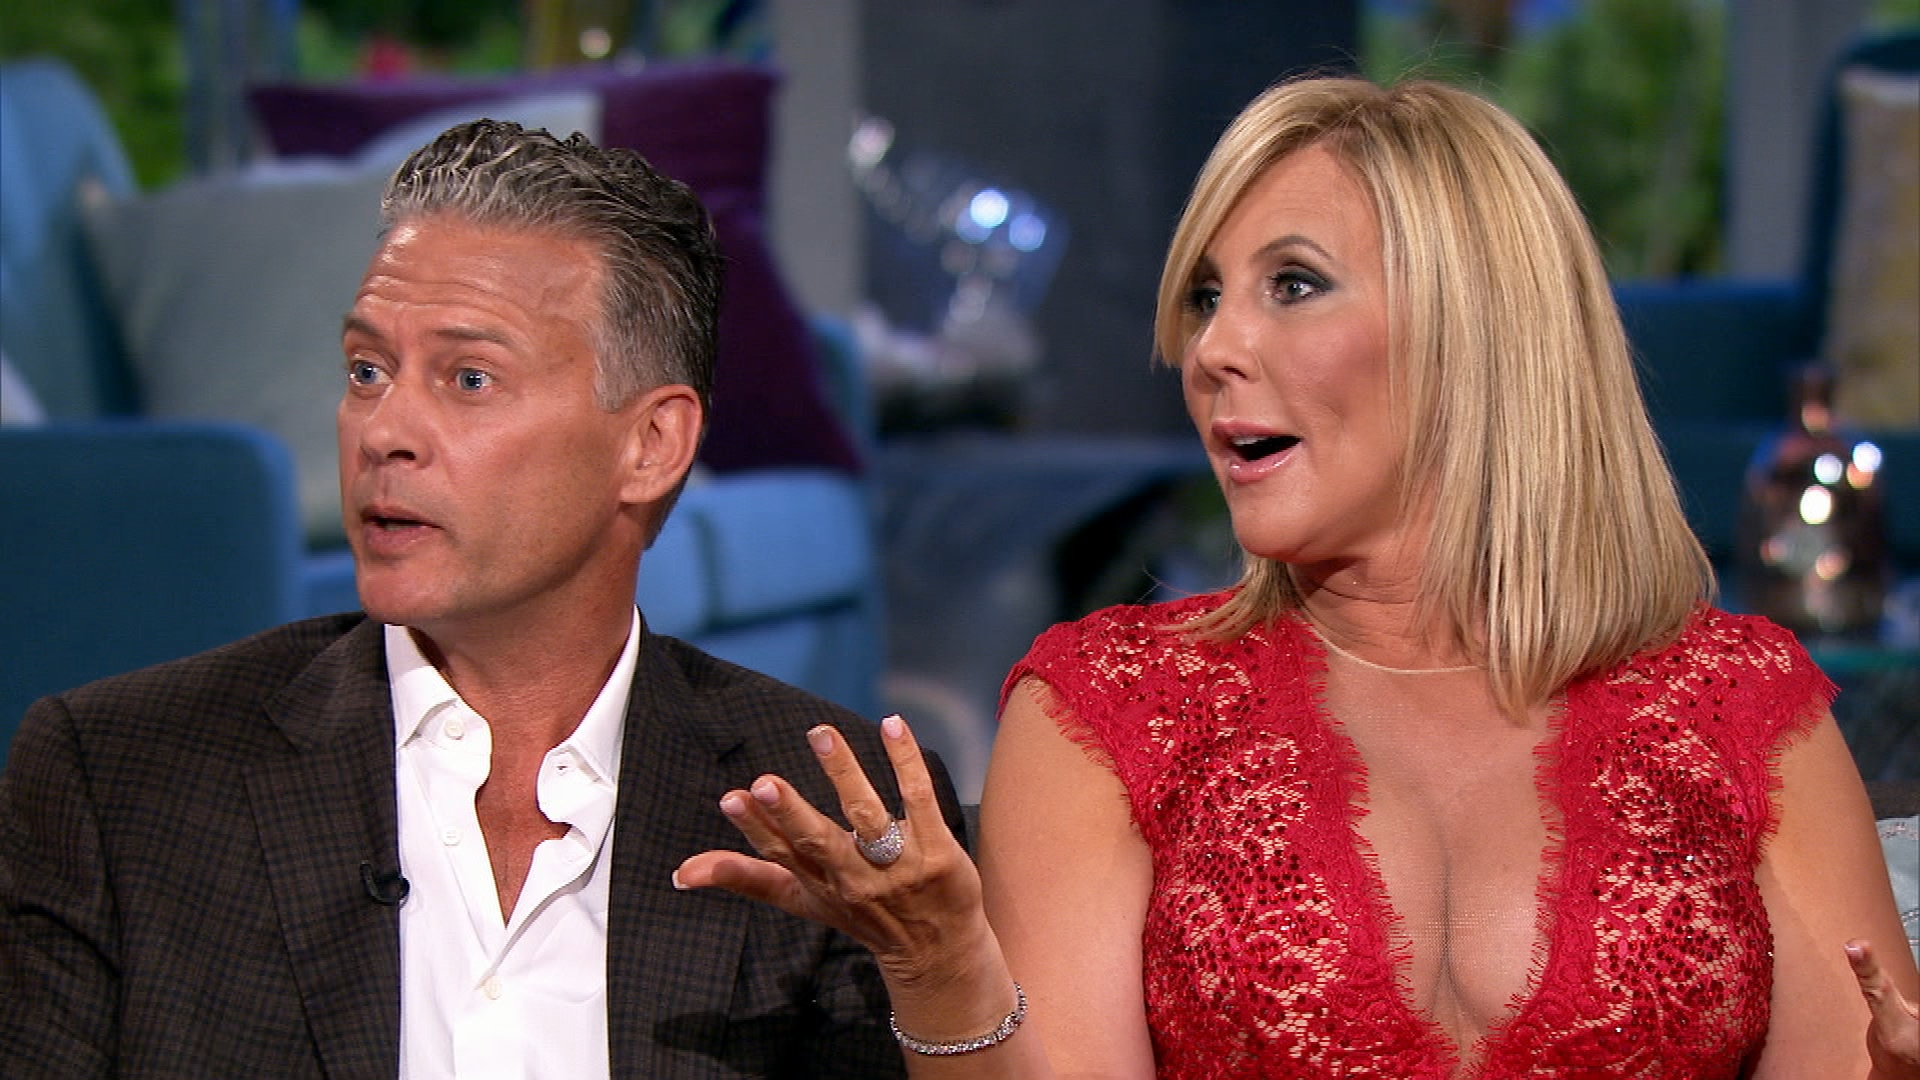 Will Vicki Makeout With Shannon's Husband?